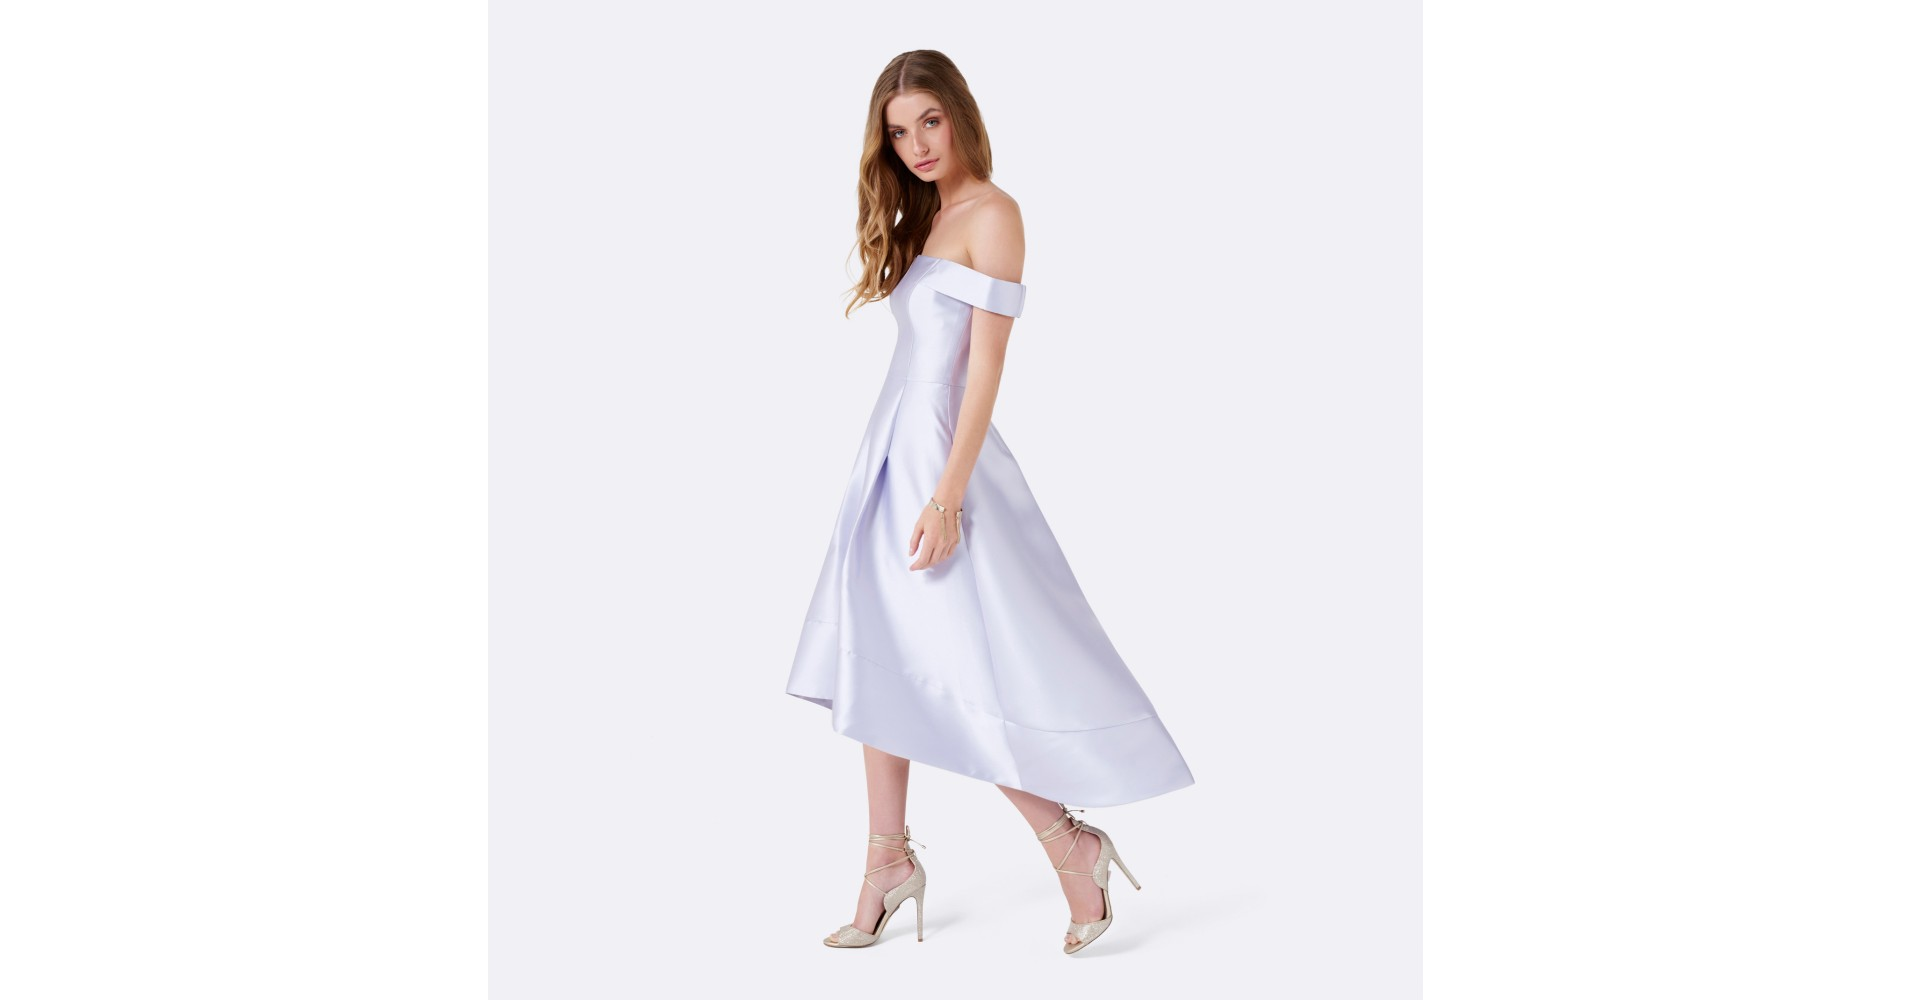 Dress Riverdale Betty Cooper Prom Off The Shoulder White Silk